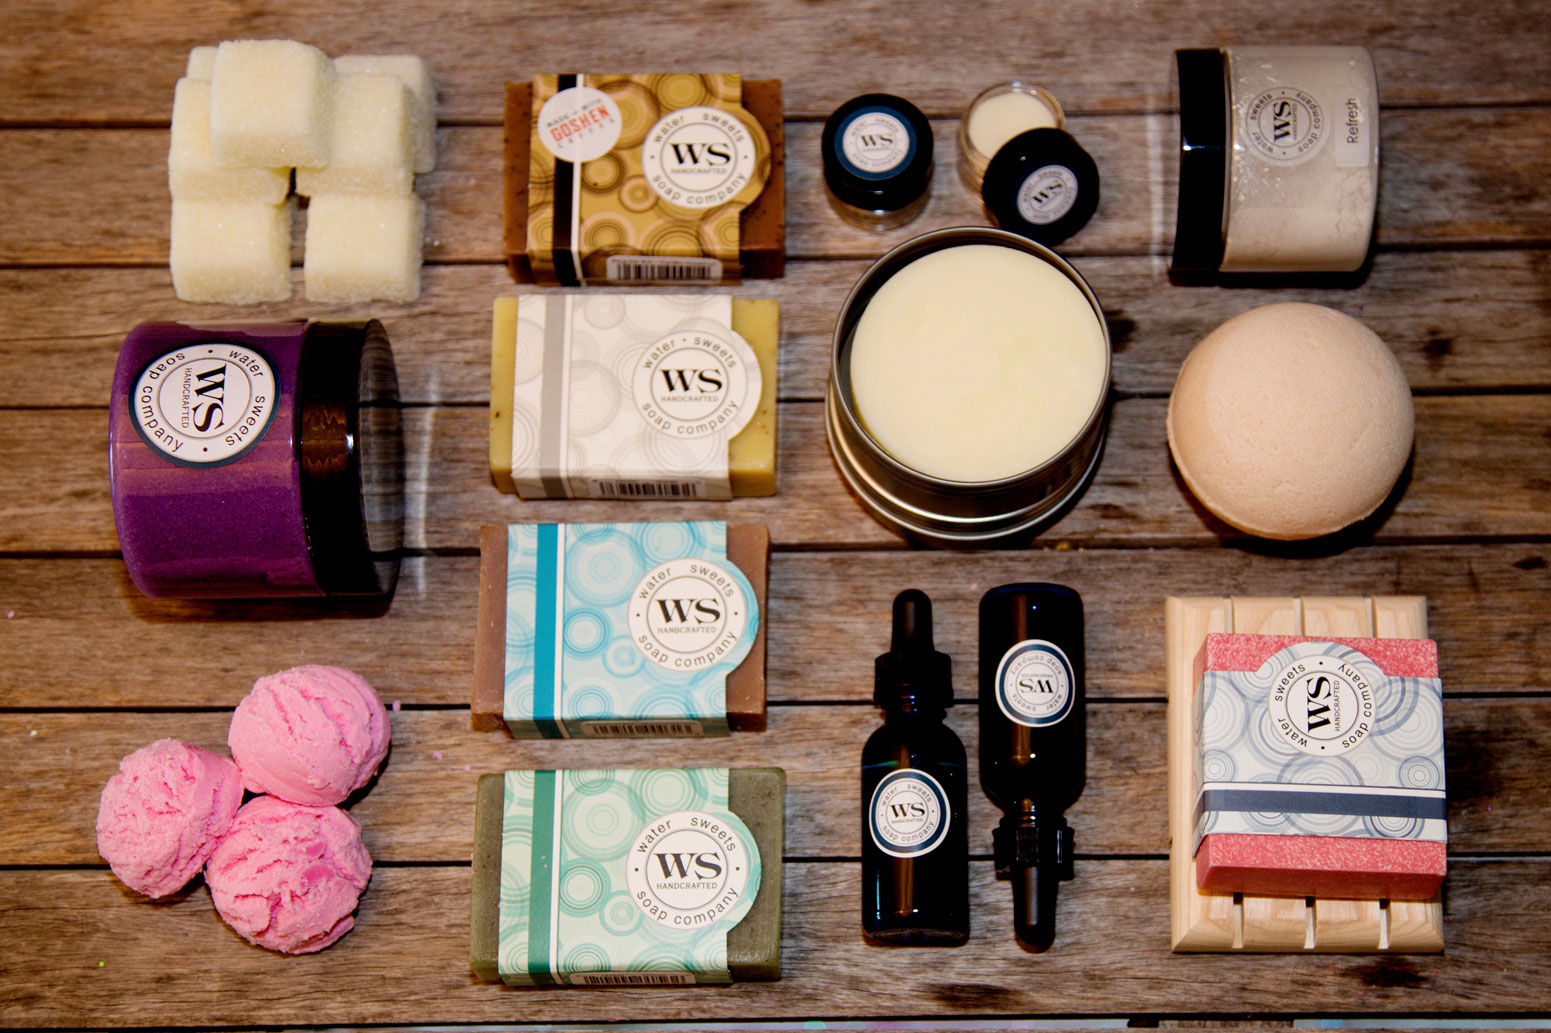 About Us - Water Sweets Soap Company is a family owned and operated manufacturer and retailer of handcrafted, signature soaps and other bath essentials including bath bombs, lotion bars, body scrubs and much more .